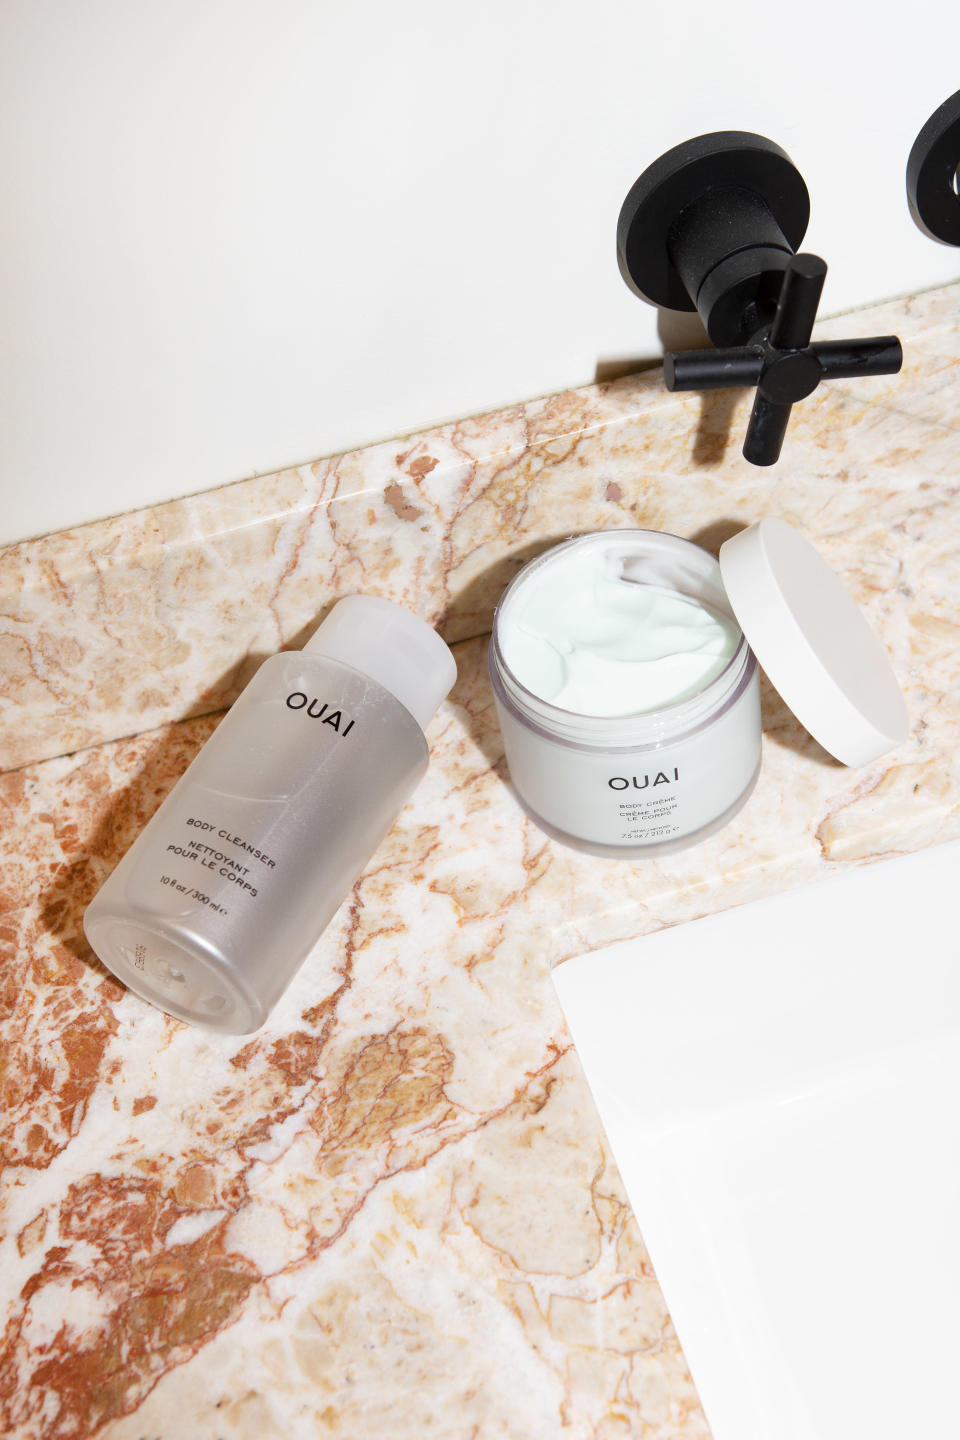 The new body cleanser and body crème from Ouai. - Credit: Courtesy Image